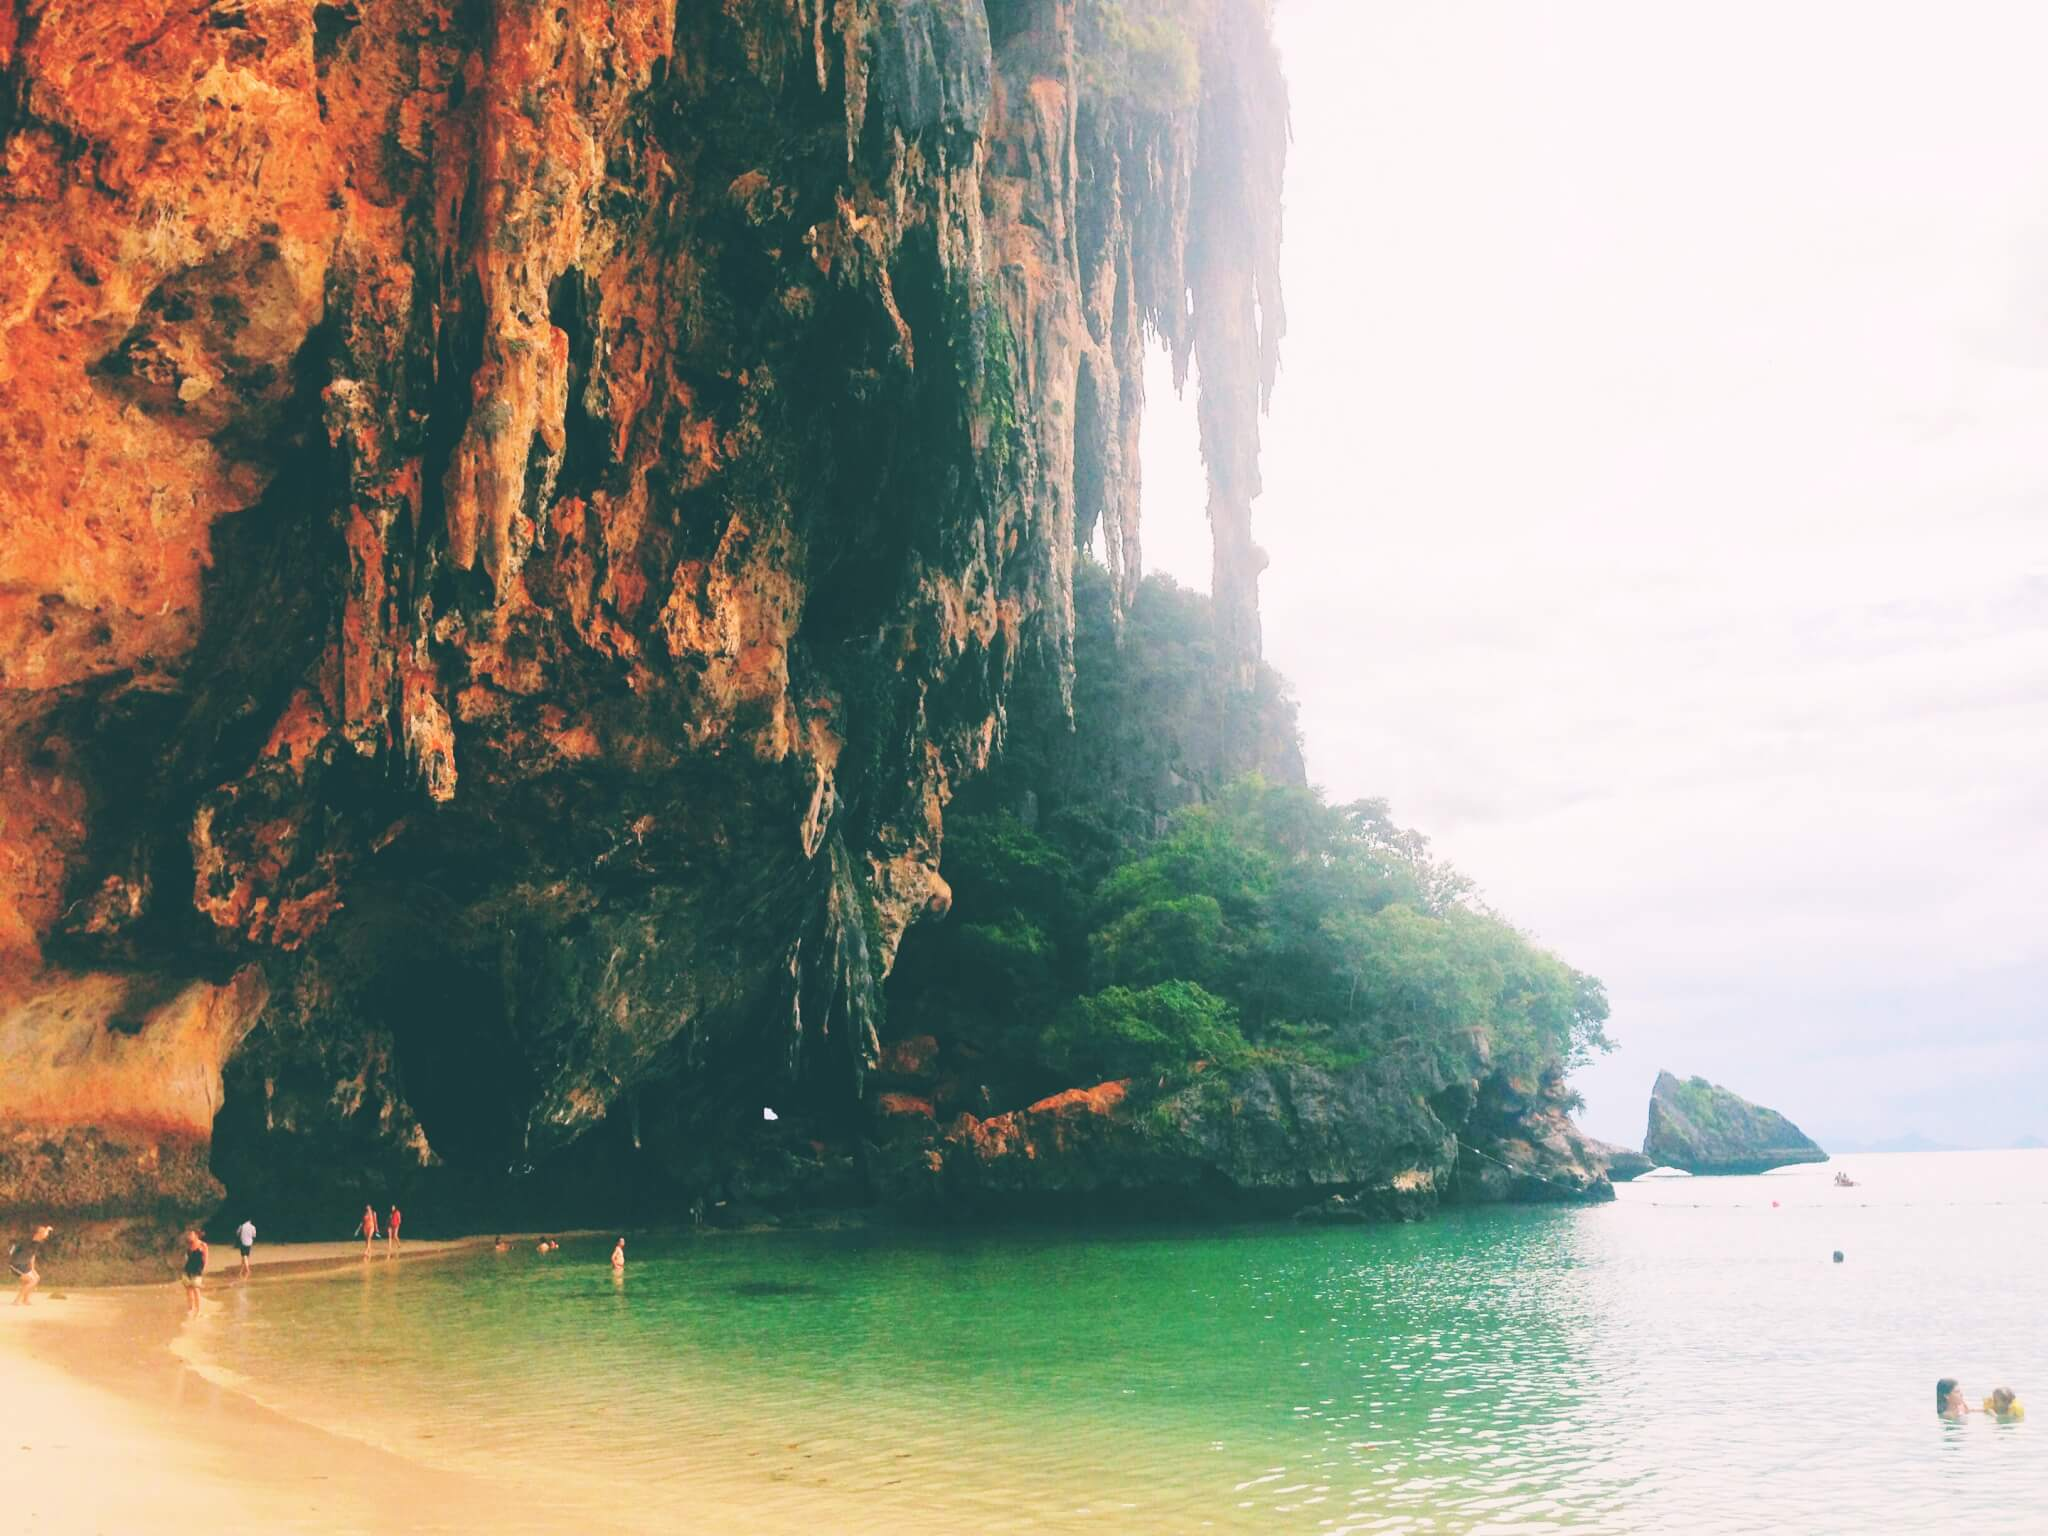 50 Photos that Will Make You Want to Go to Thailand